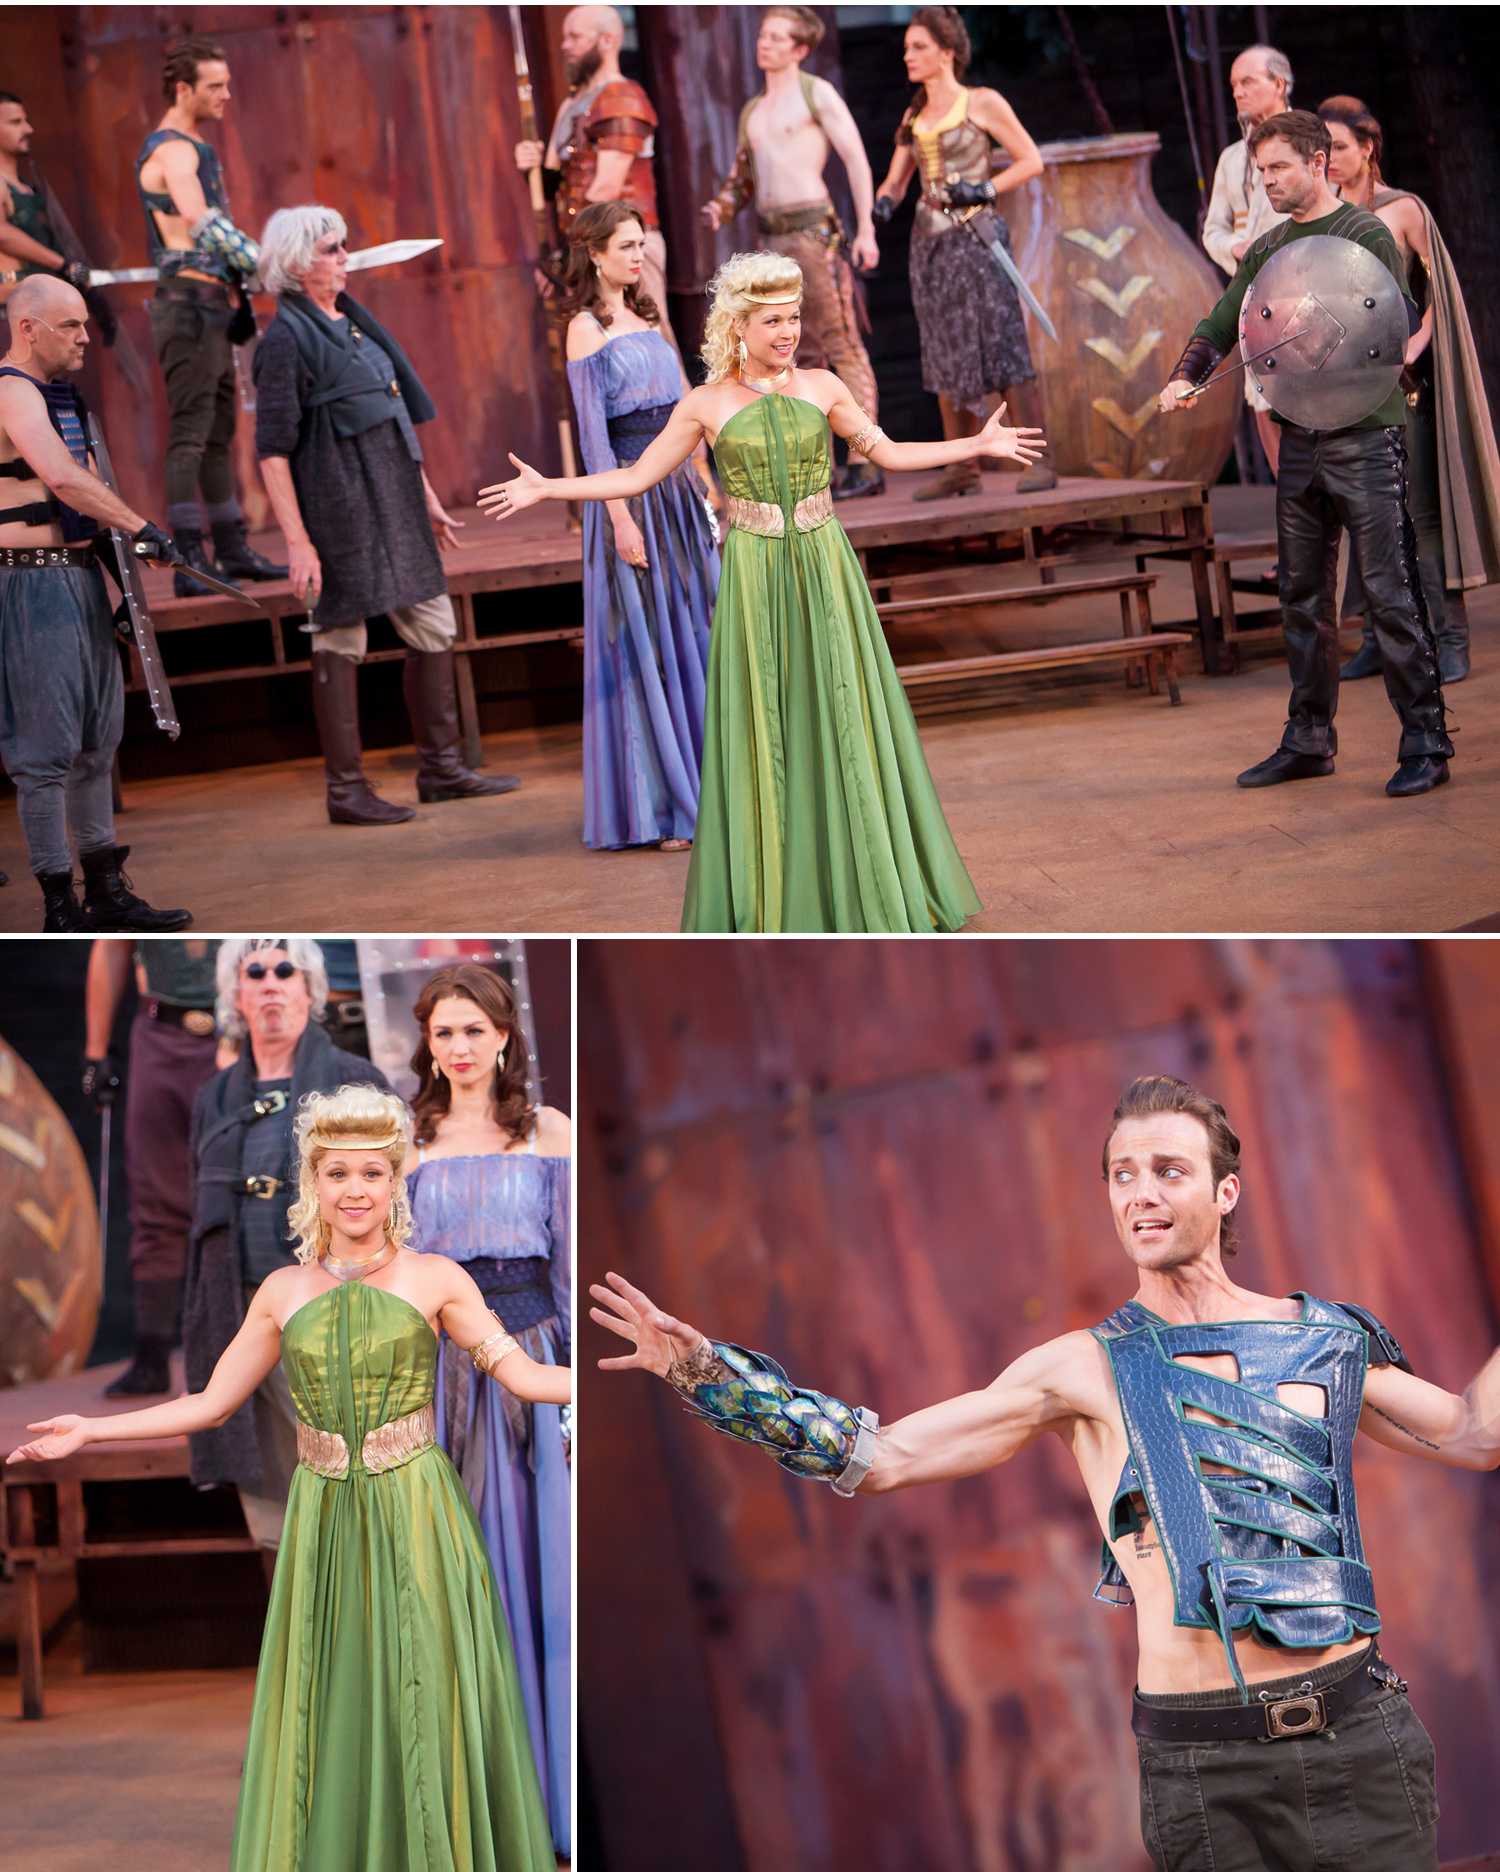 Troilus & Cressida at Colorado Shakespeare Festival, photographed by Jennifer Koskinen, Merritt Portrait Studio